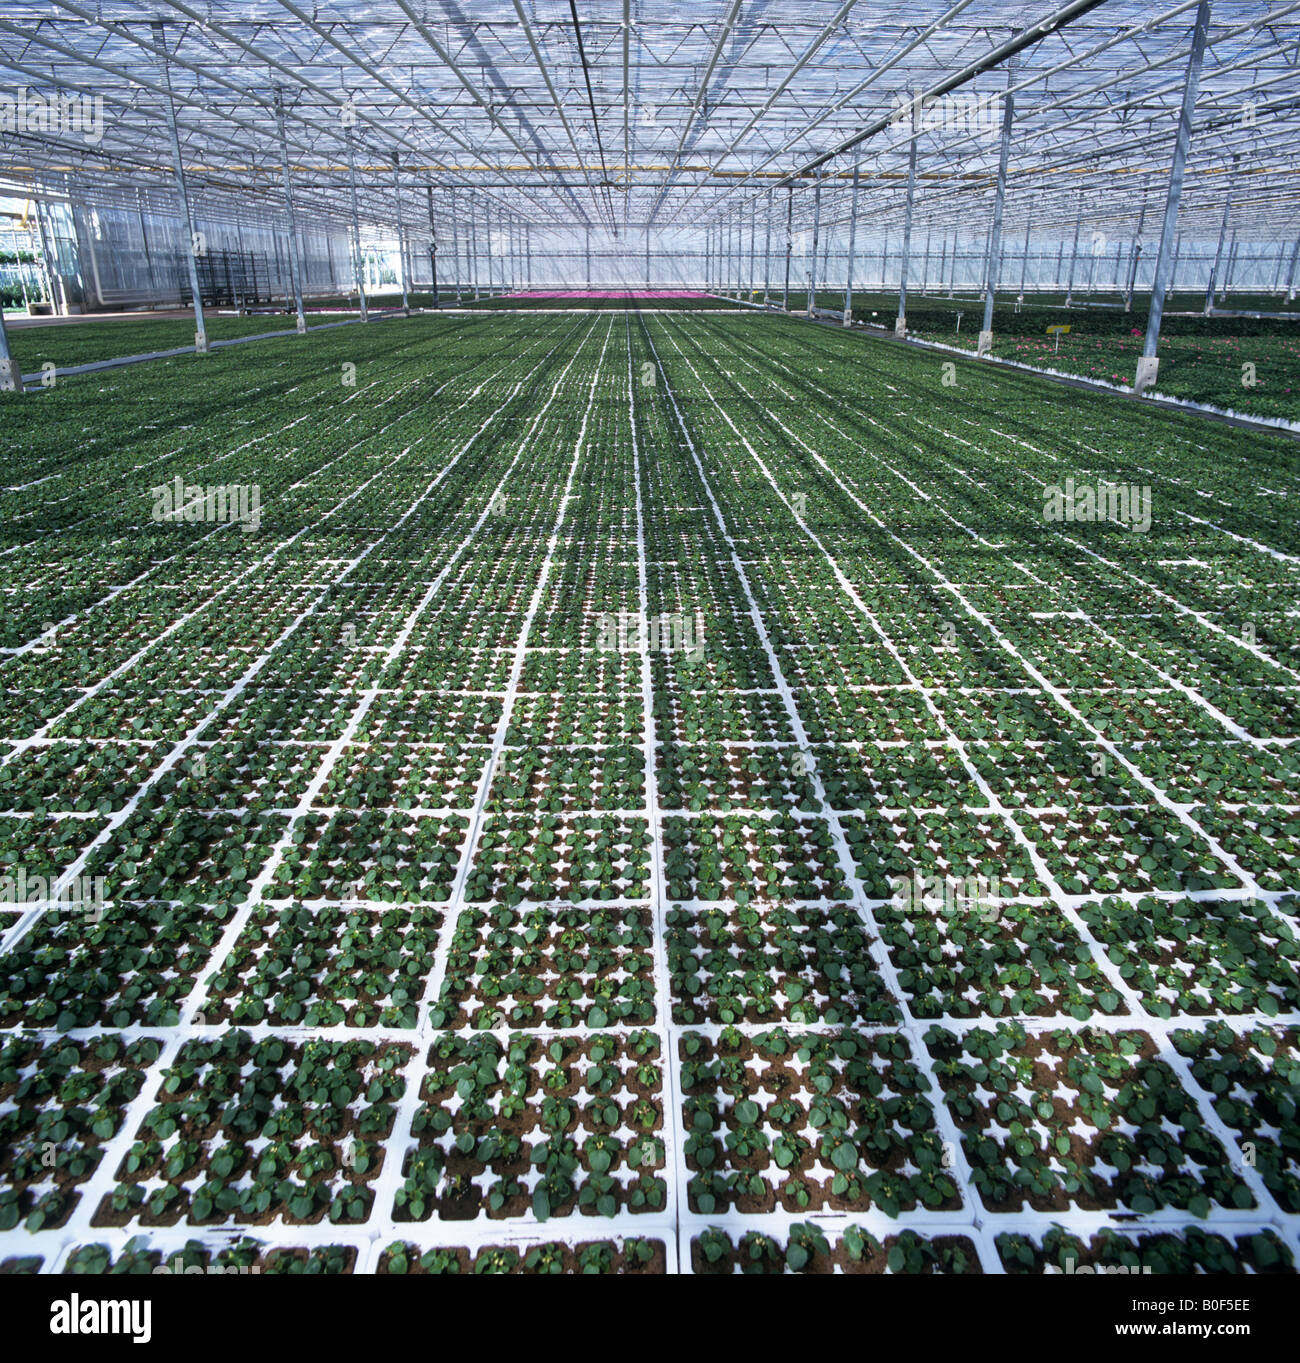 Young buzy lizzie seedlings in large commercial glasshouse to rear as flowering pot plants - Stock Image